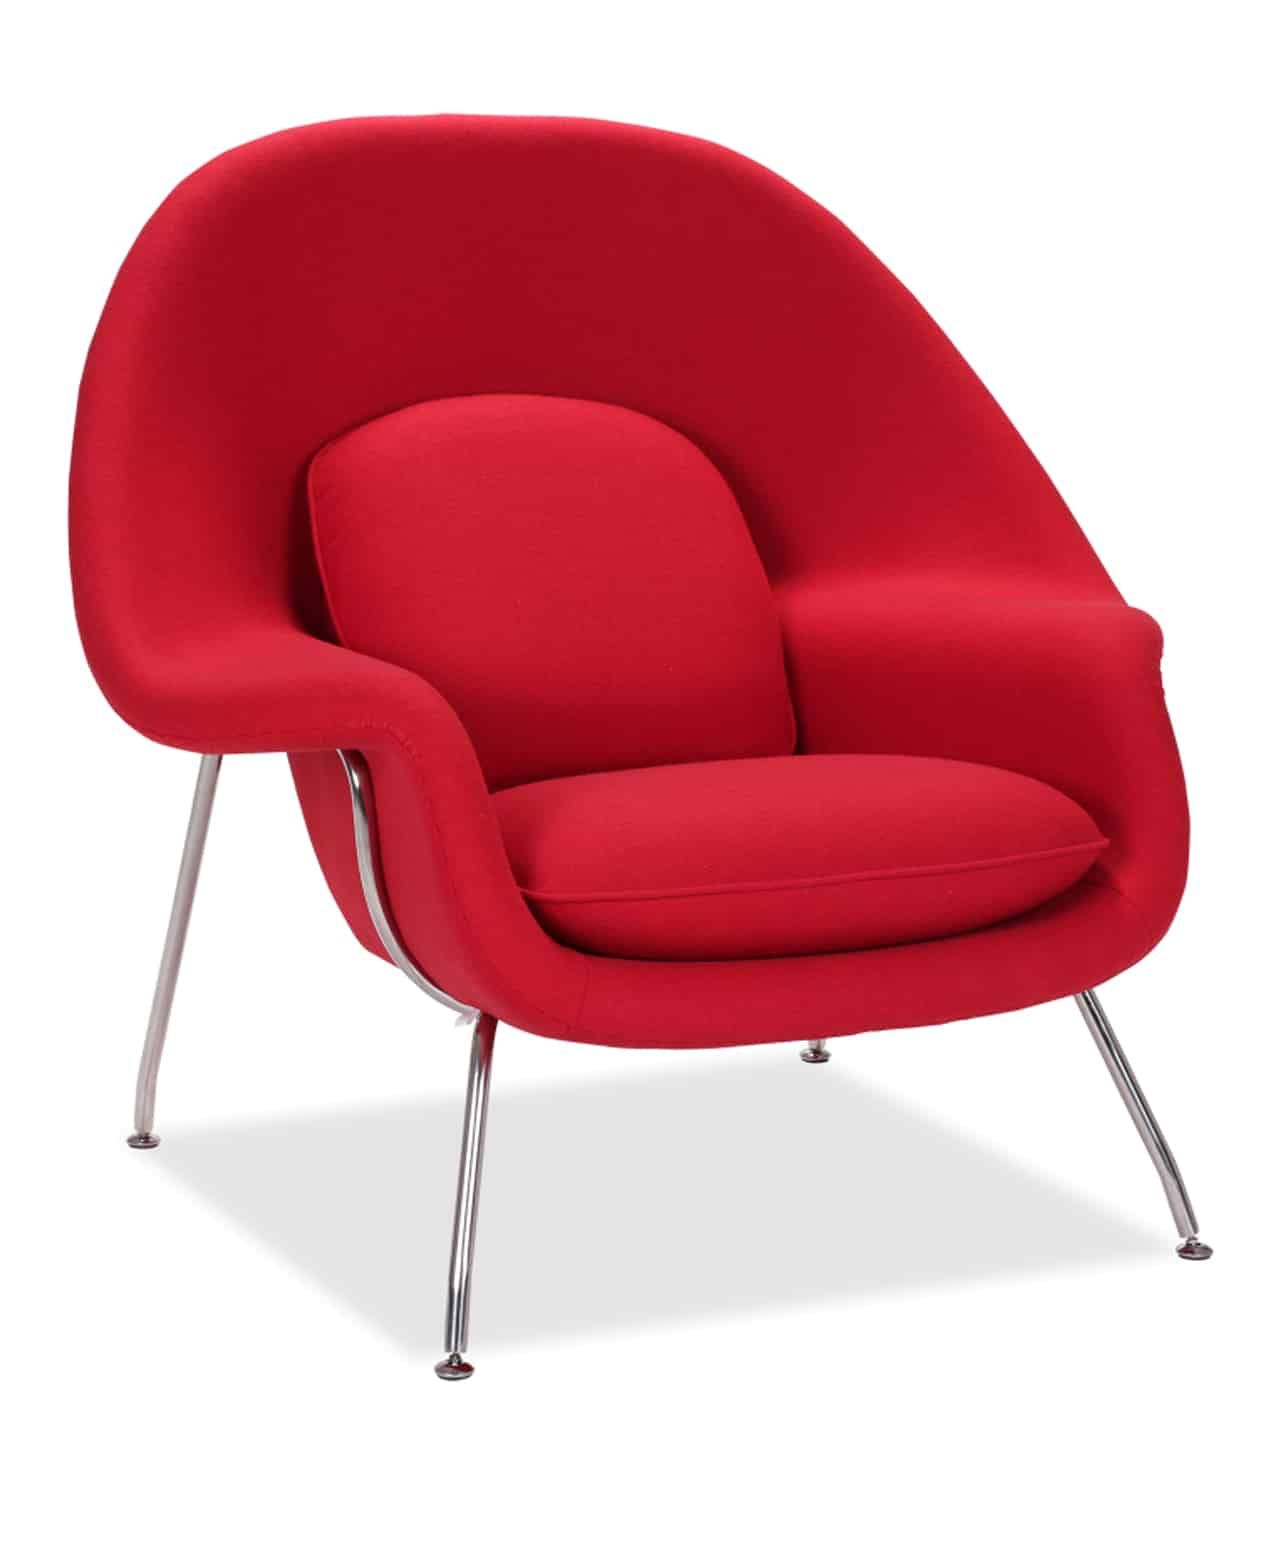 Womb Chair Premium Reproduction Inspired By Eero Saarinen S